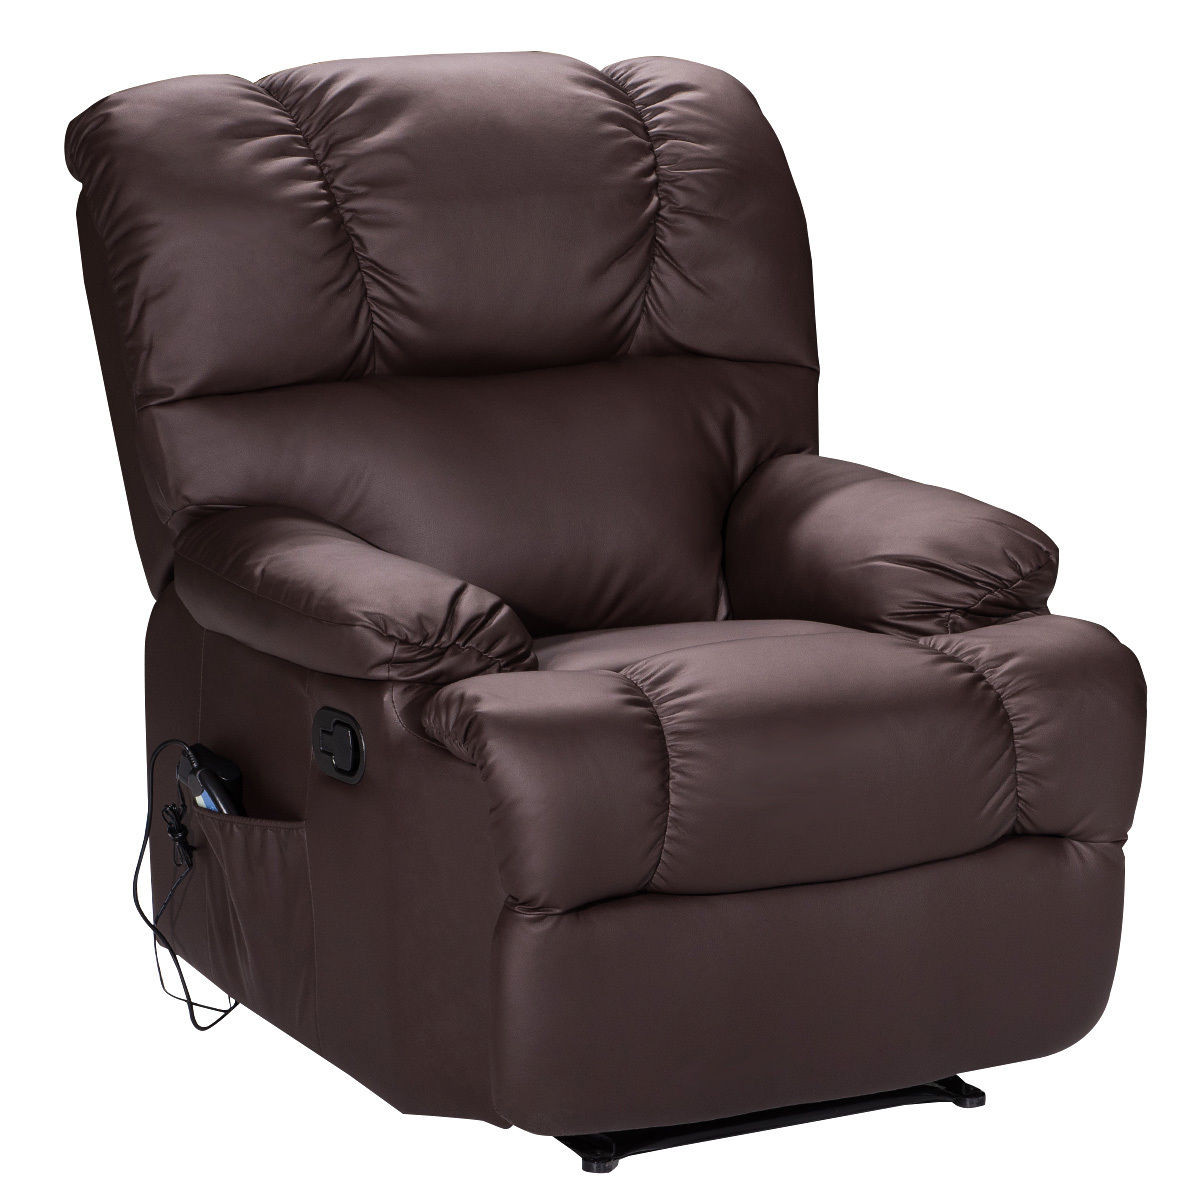 Ordinaire Goplus Recliner Massage Sofa Chair Deluxe Ergonomic Lounge Couch Heated  W/Control Brown